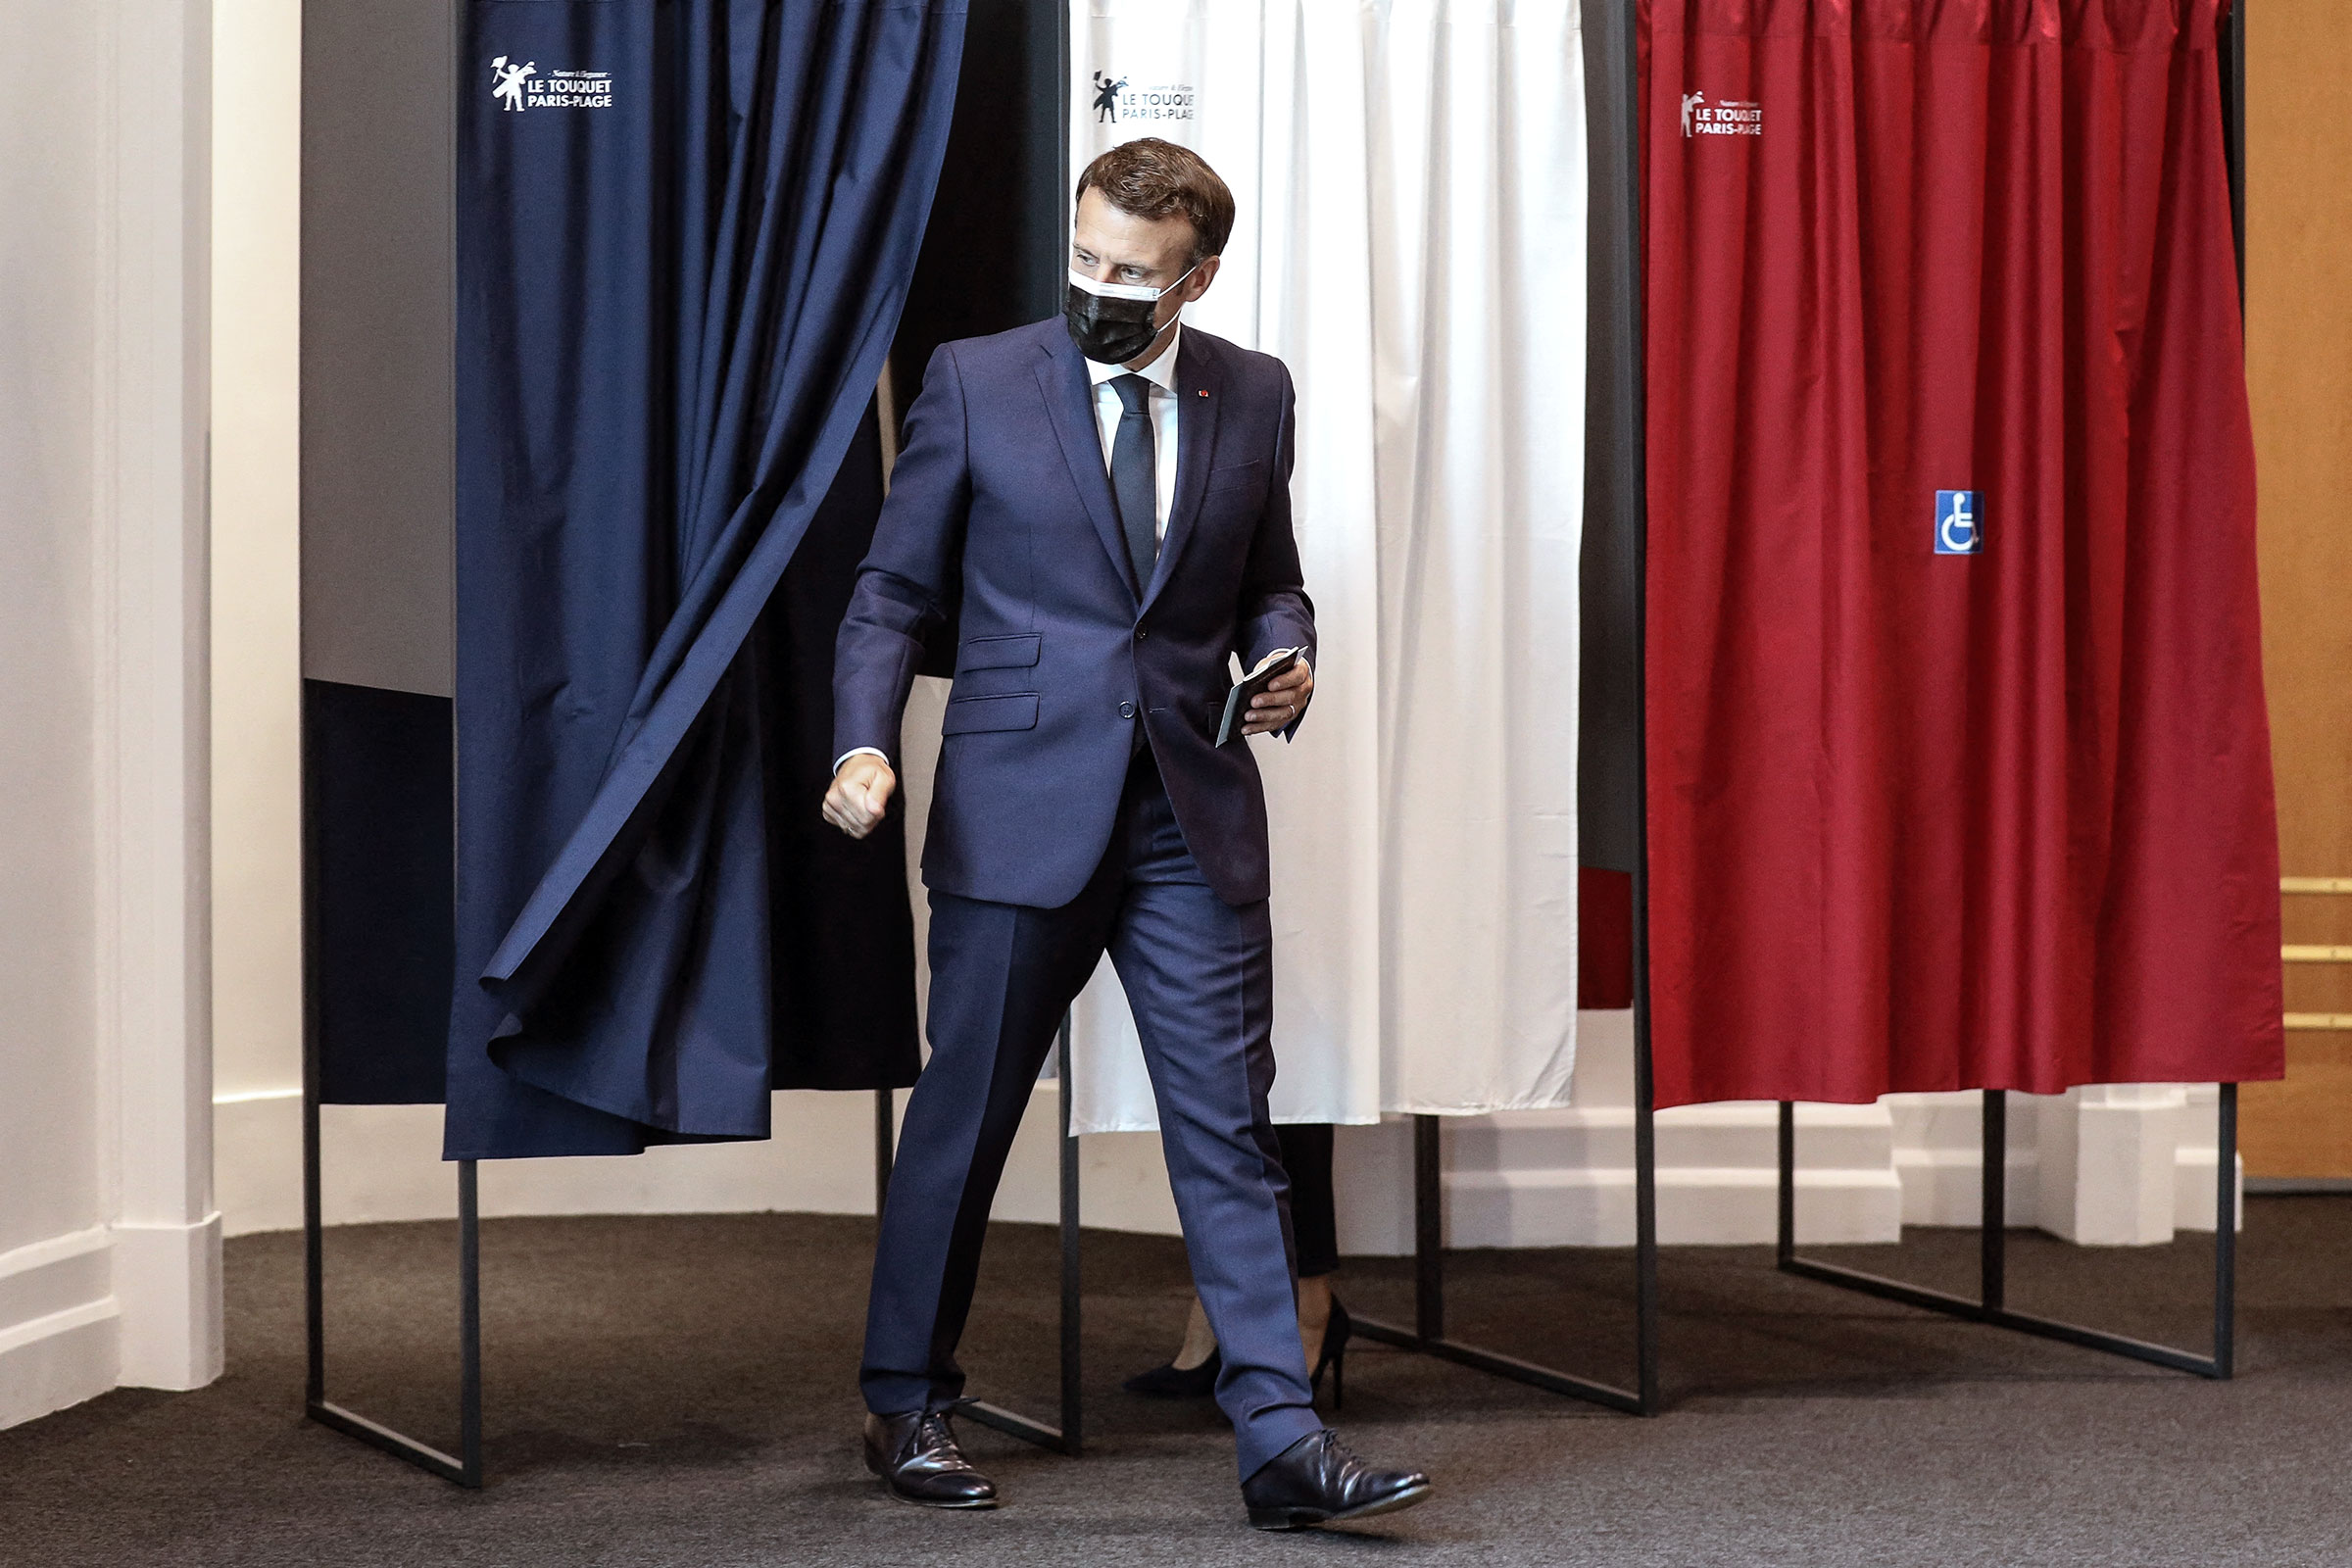 French President Emmanuel Macron and his wife Brigitte Macron vote at the polling station in Le Touquet, France, for the first round of the French regional and departmental elections on June 20, 2021.